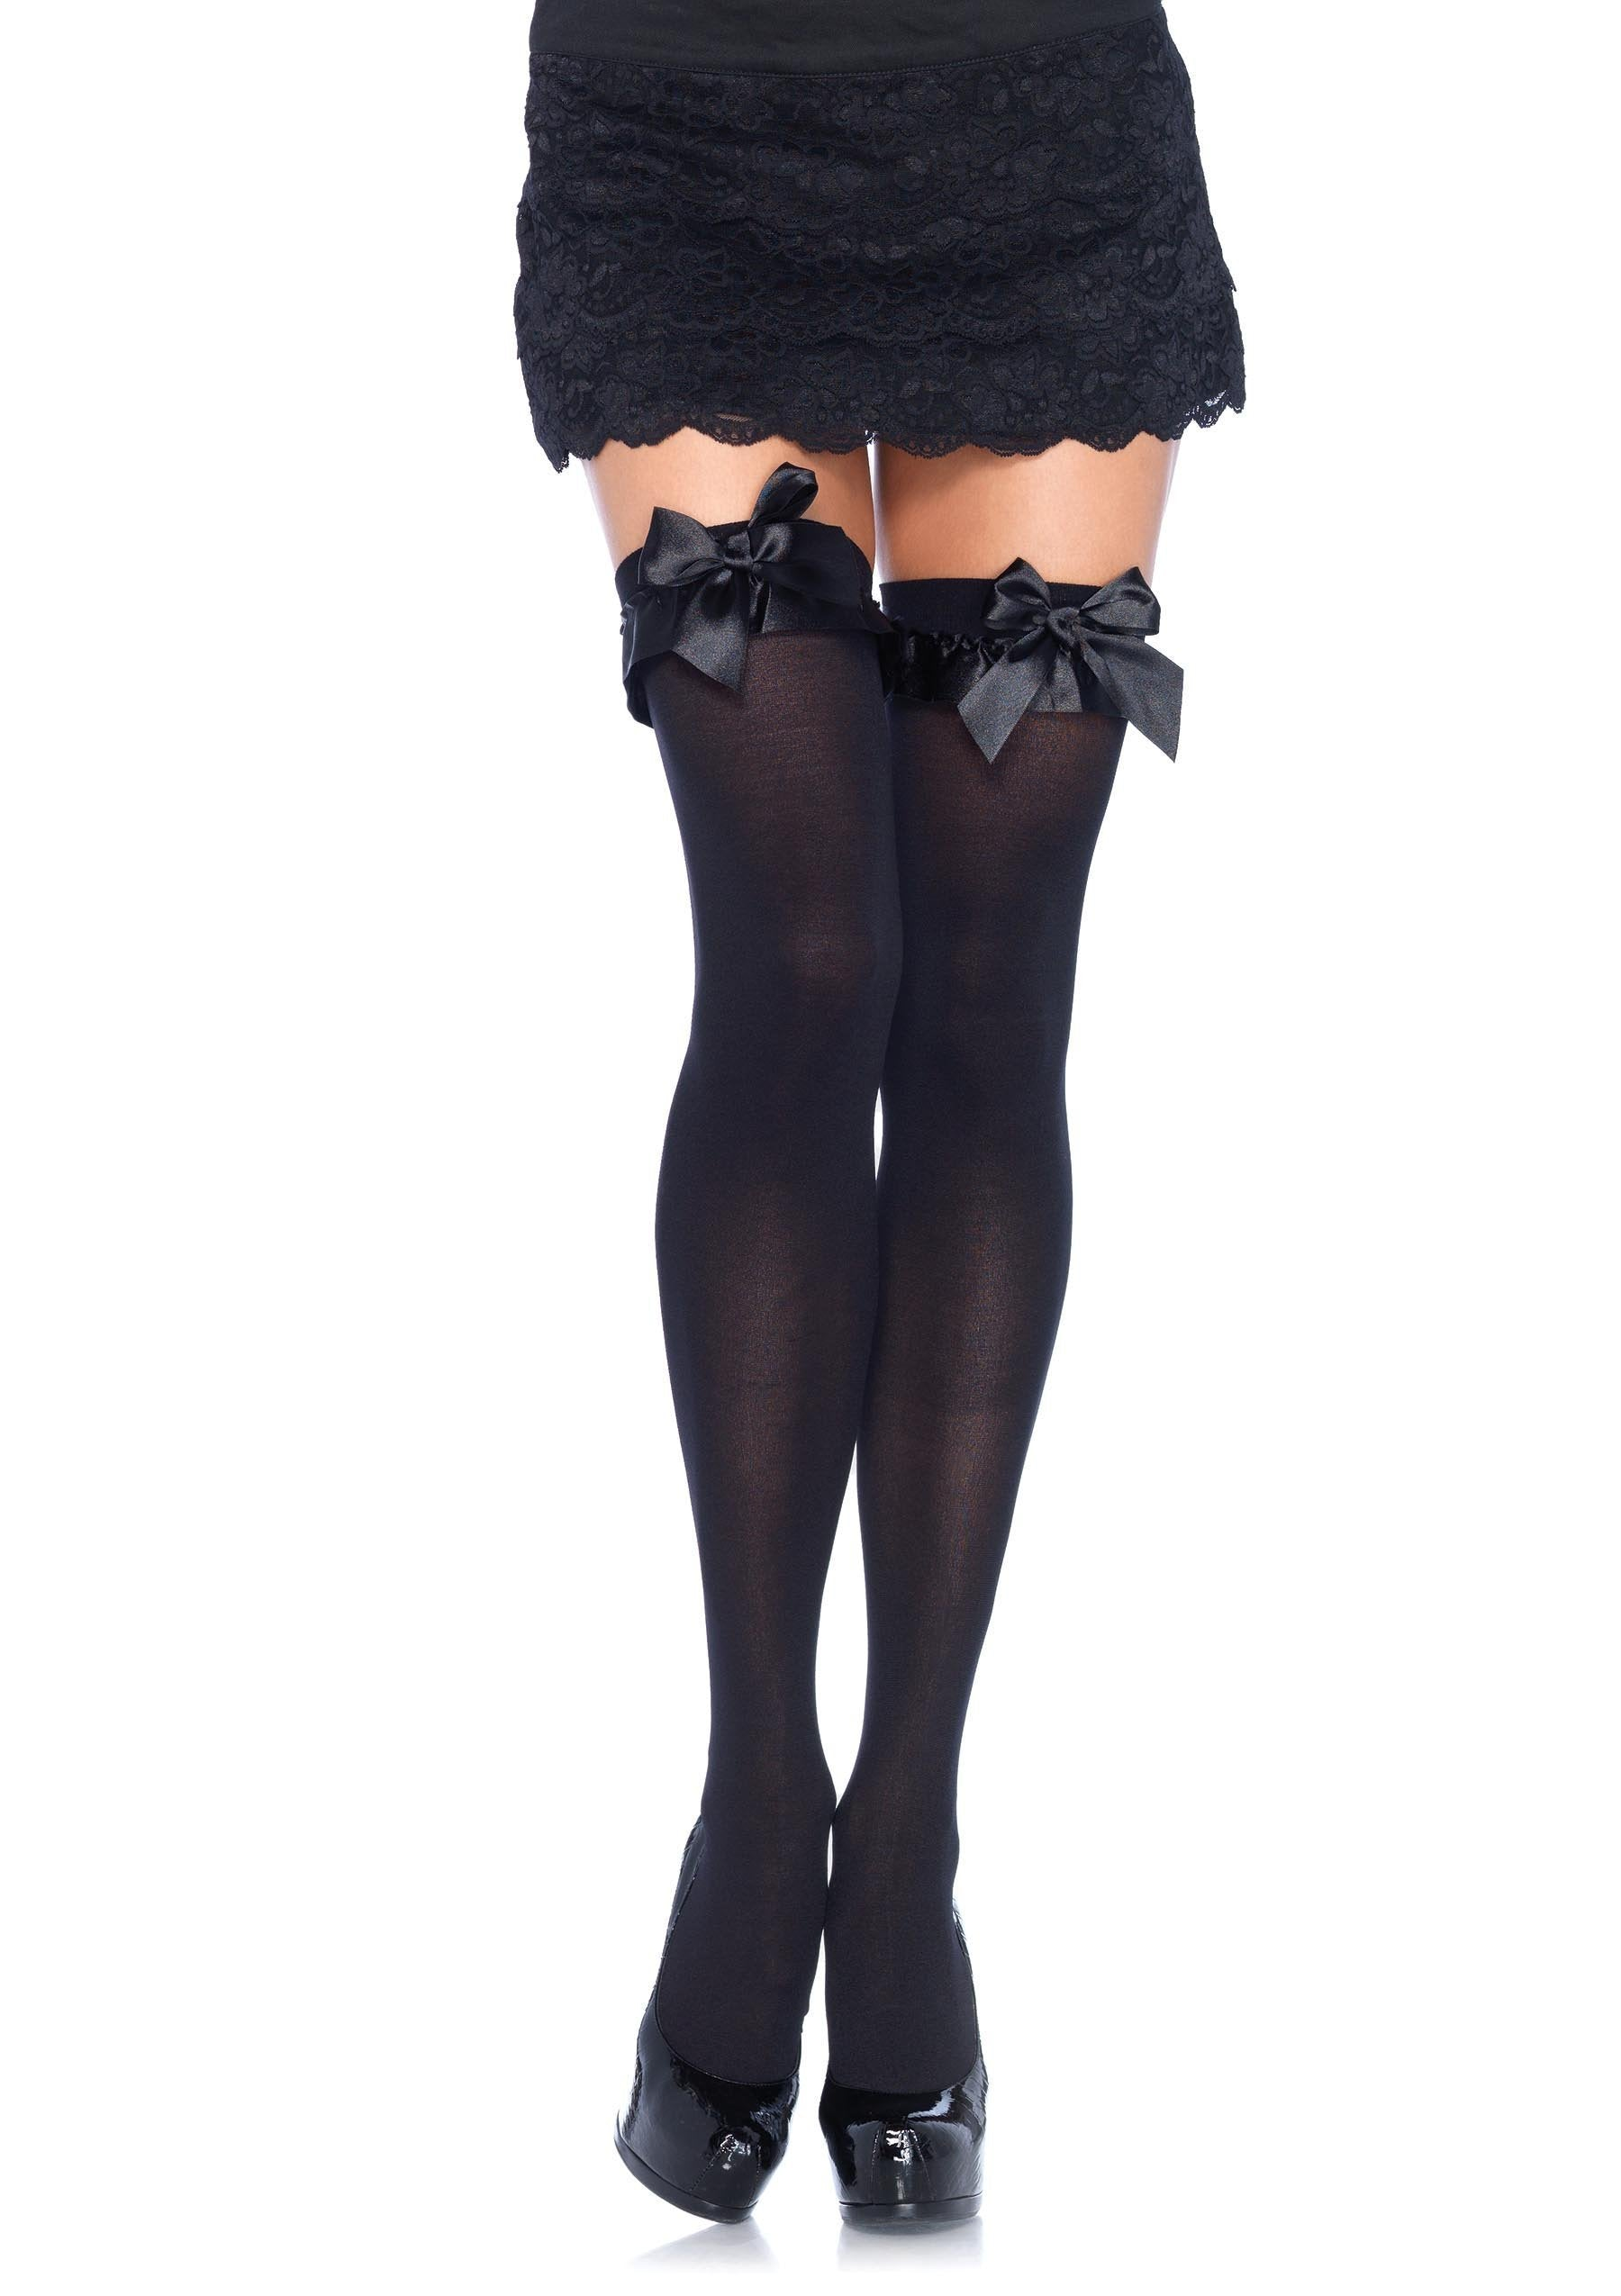 Leg Avenue Costume Accessories BLACK / O/S Thigh Highs with Ruffle & Bow